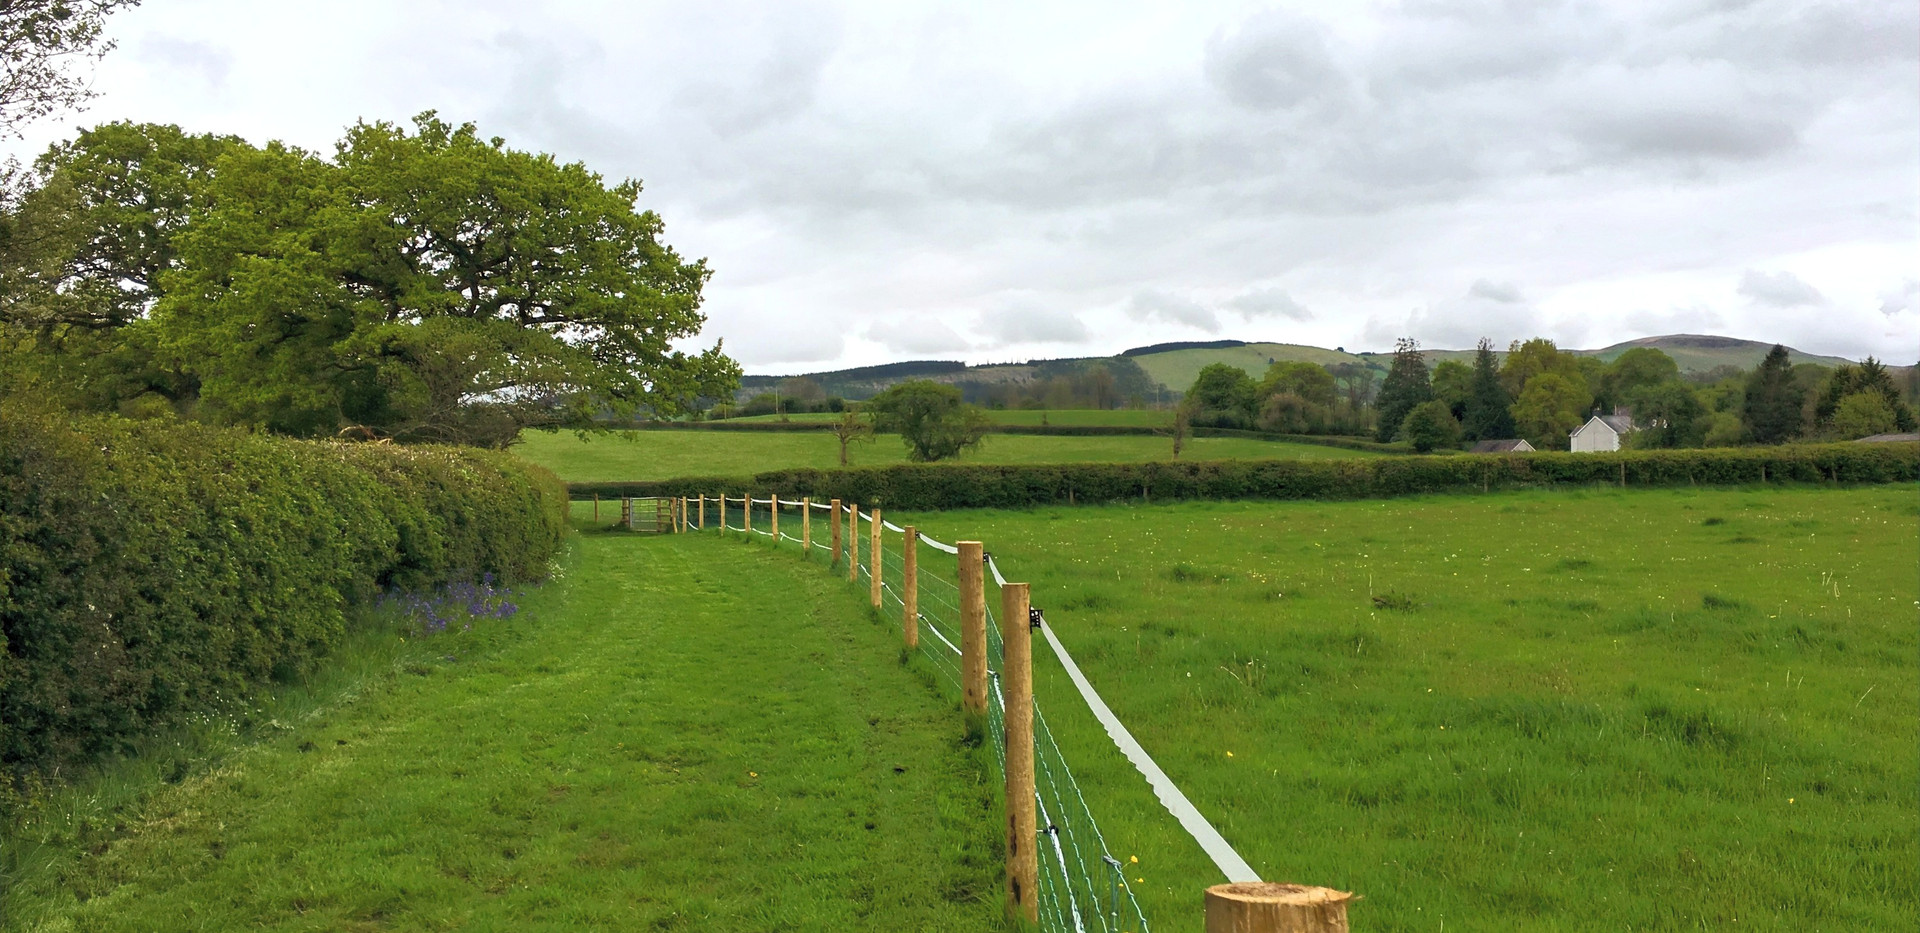 Fenced dog walk and orchard